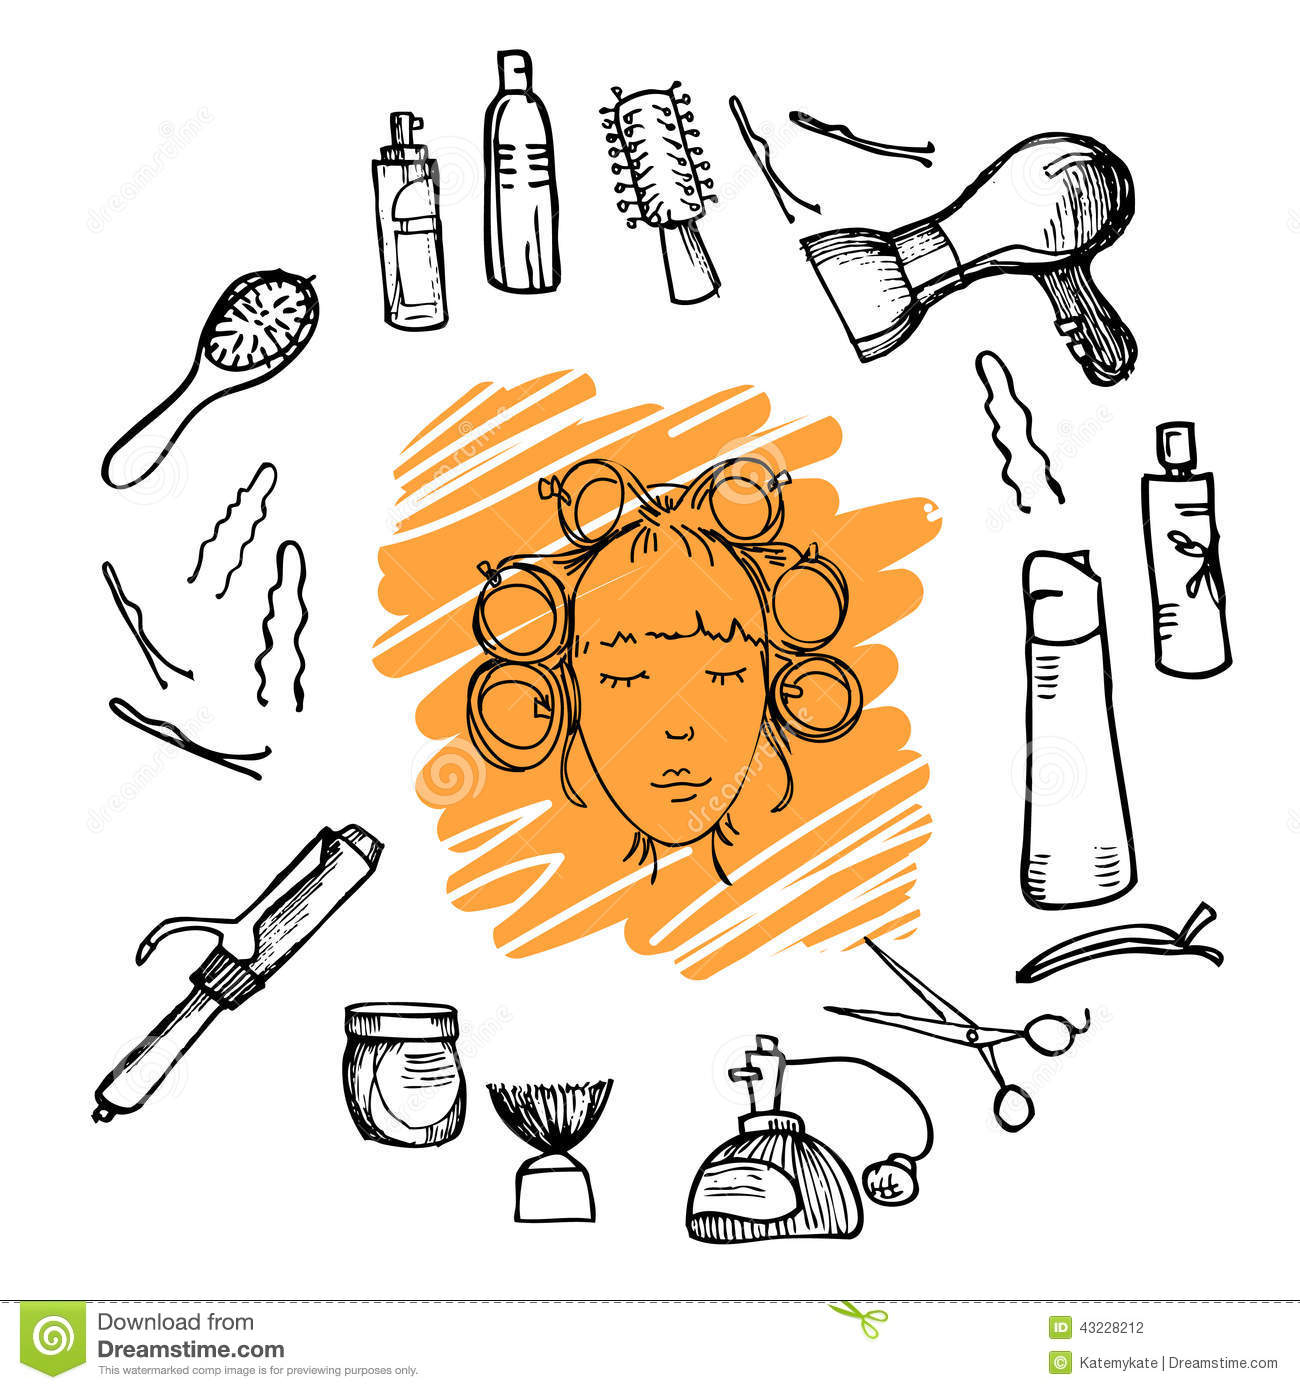 Hand drawn illustration - Hairdressing tools (scissors, combs, styling) and woman with hair rollers